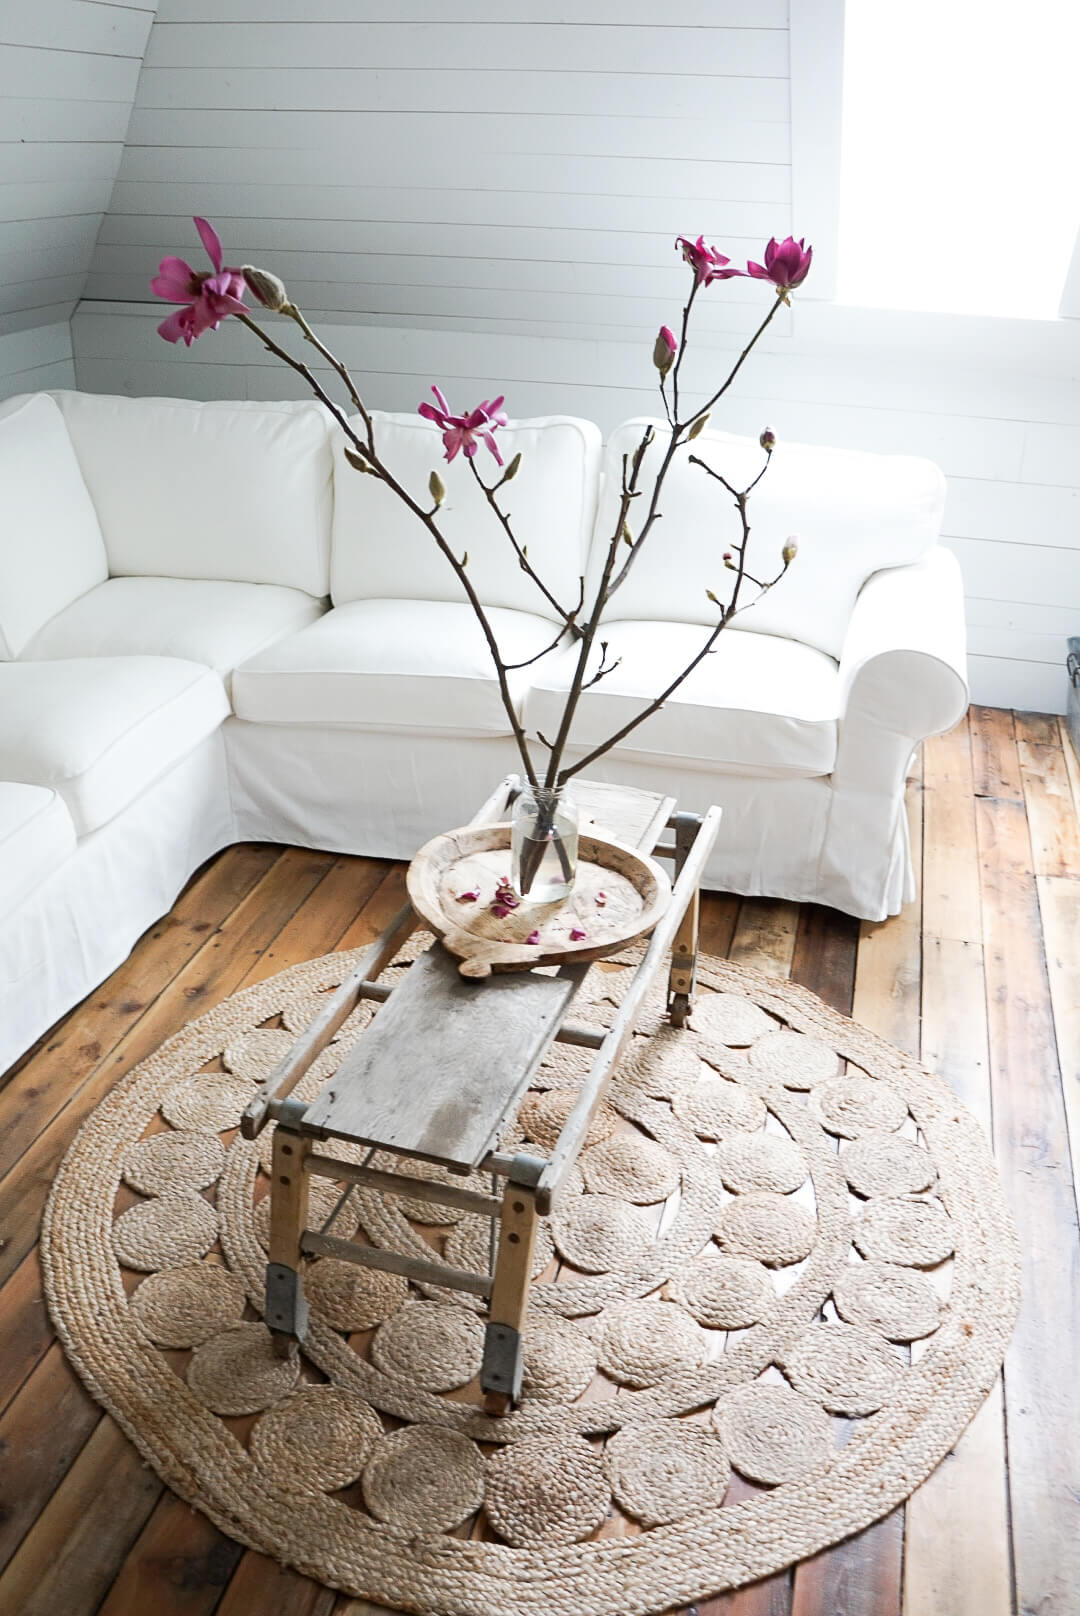 Simple-flower-decor-living-space-white-couch-minimalist